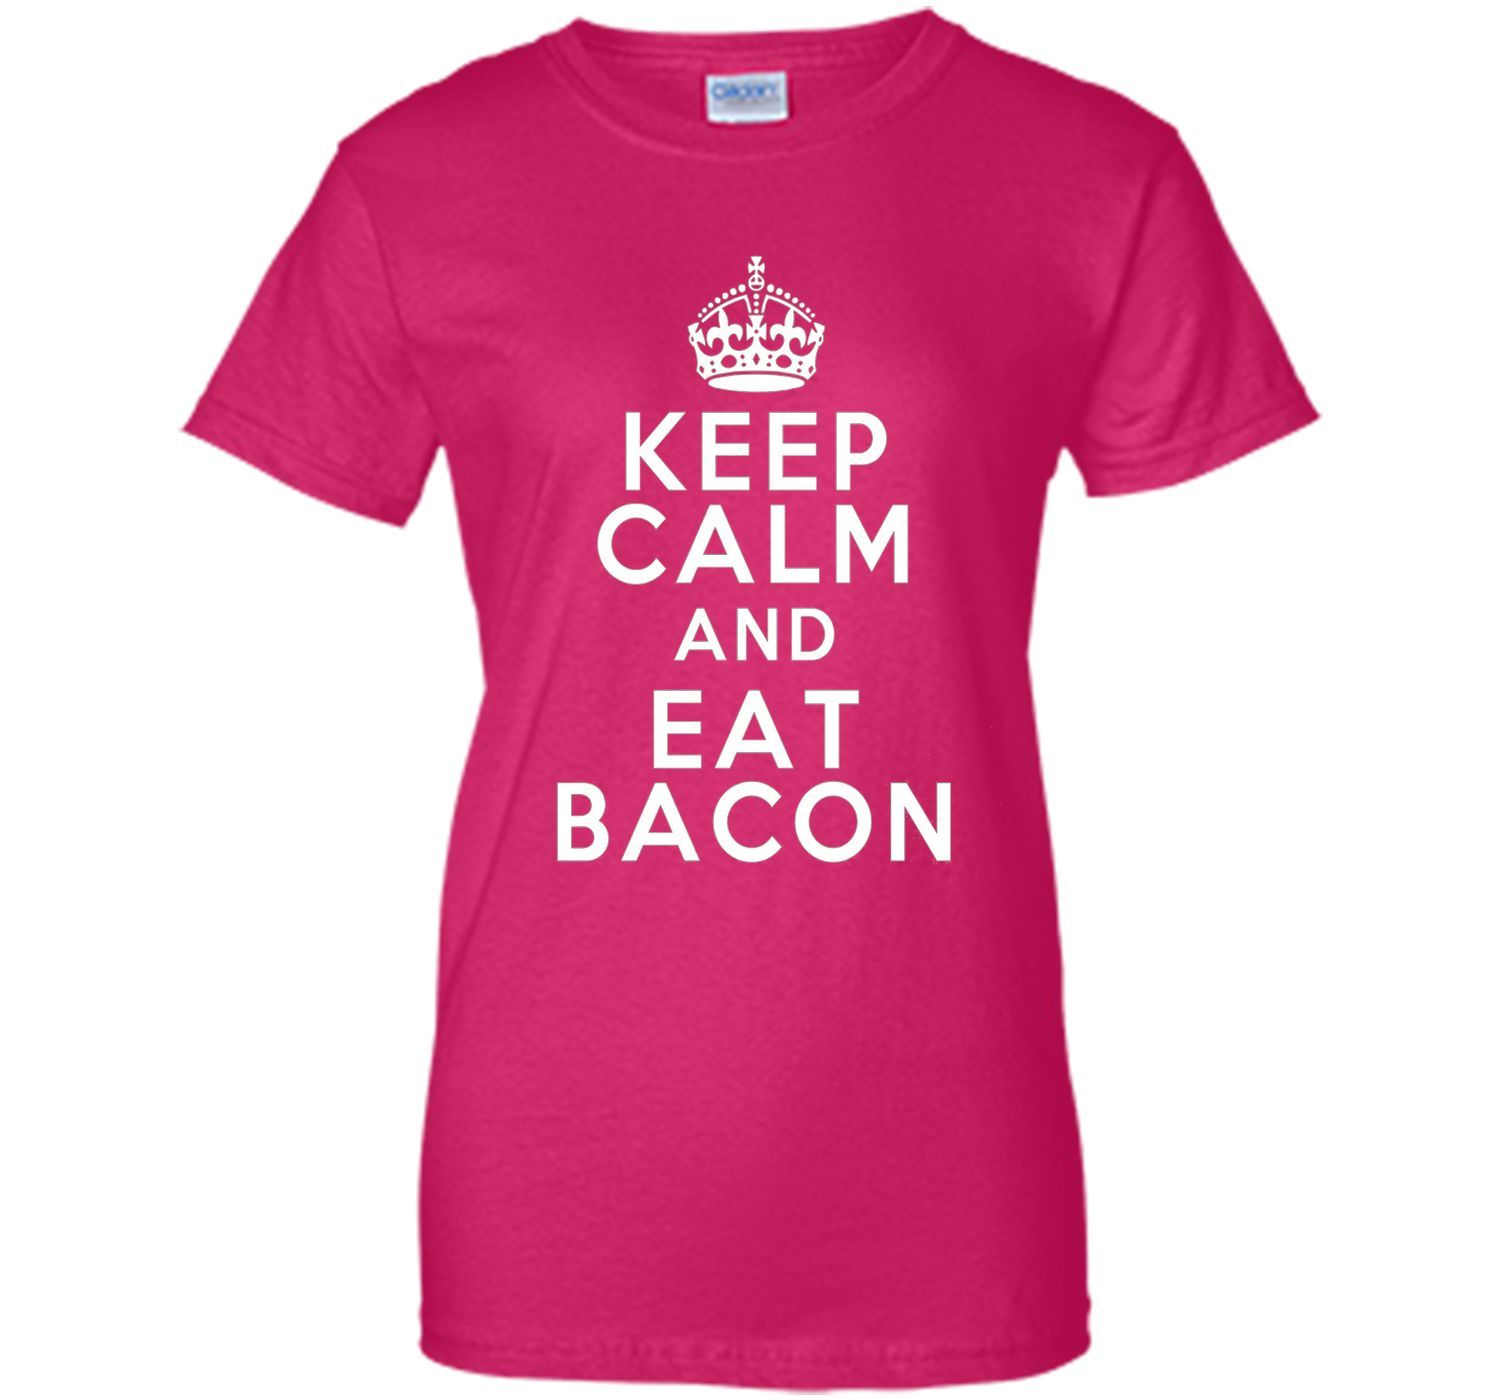 The Classic T-shirt Gift Keep Calm Eat Bacon